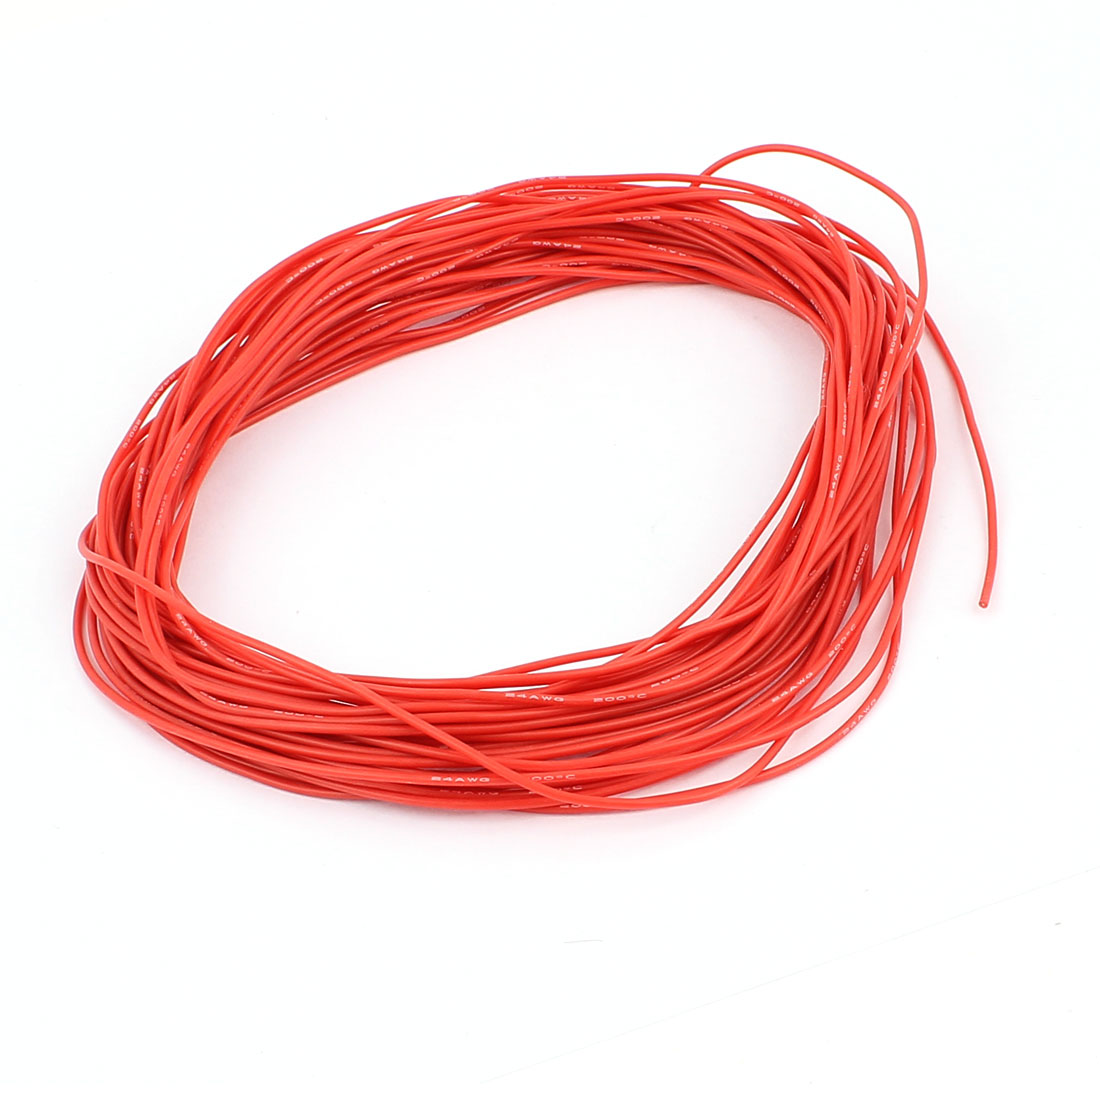 15M 24AWG Electric Copper Core Flexible Silicone Wire Cable Red